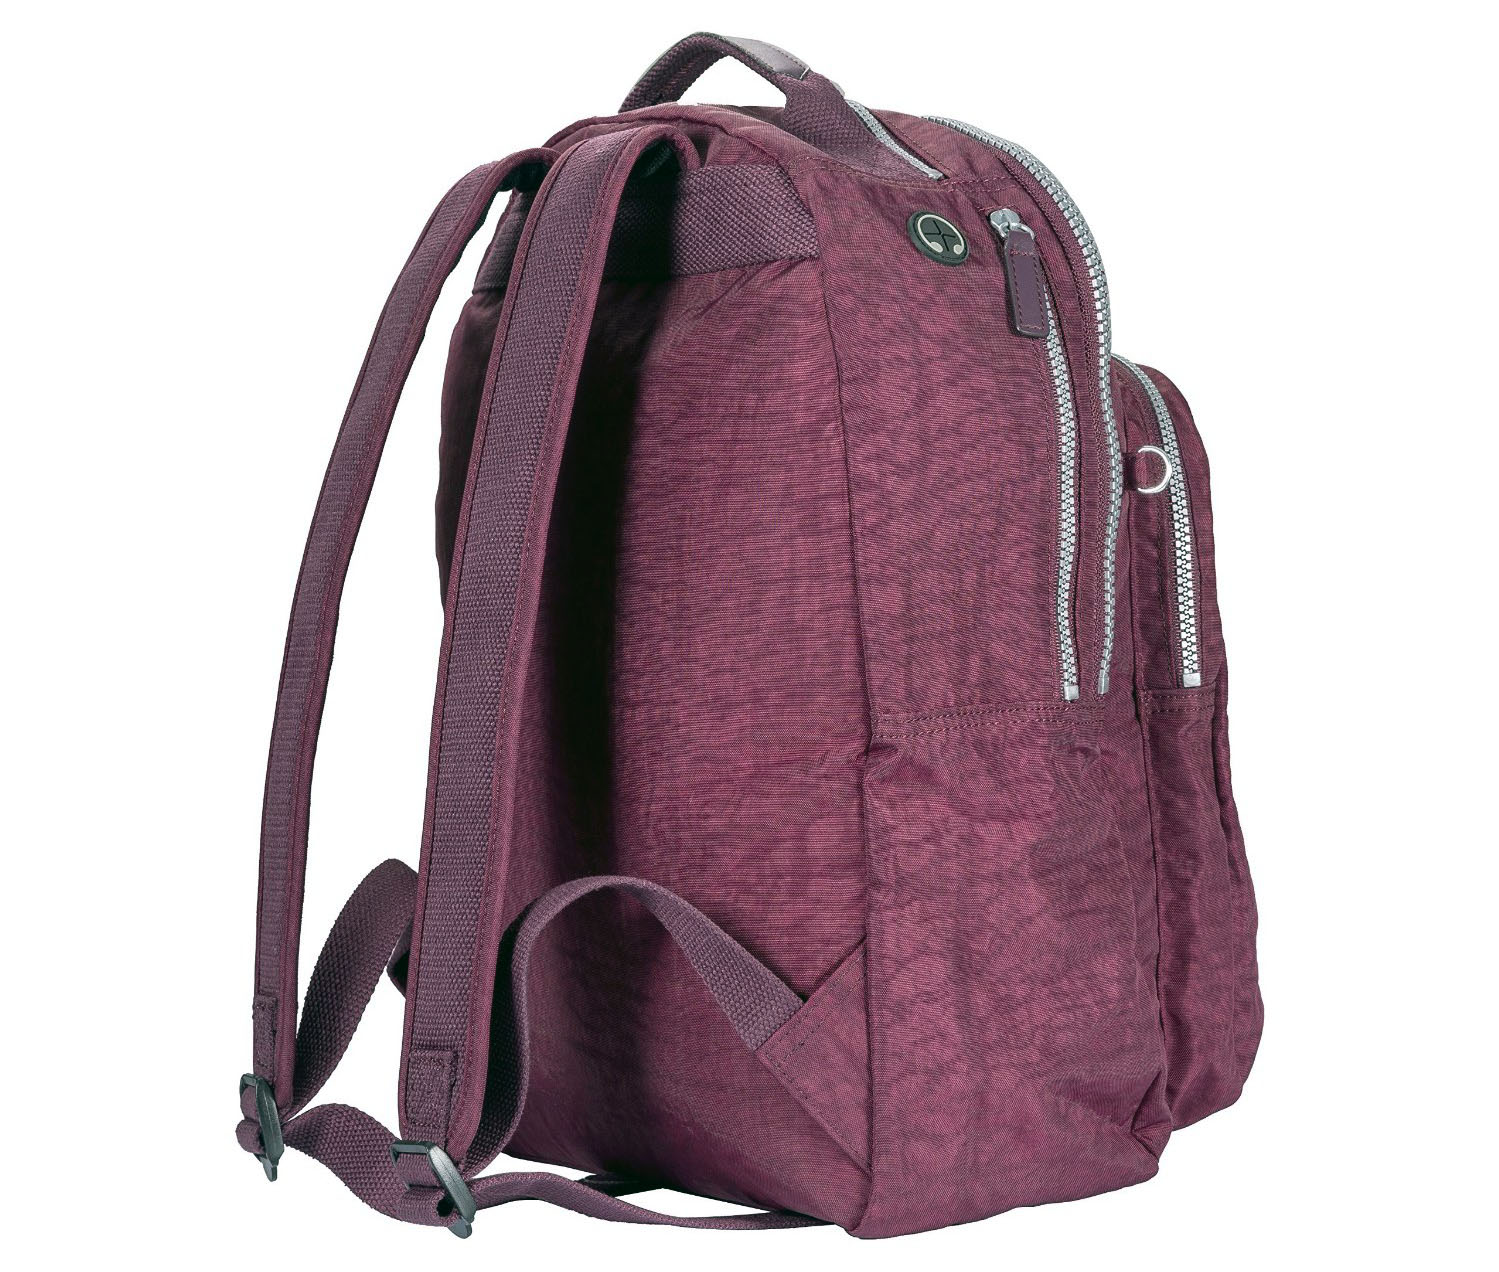 Review: Ucare Large Backpack with Laptop Protection and Headphone Port